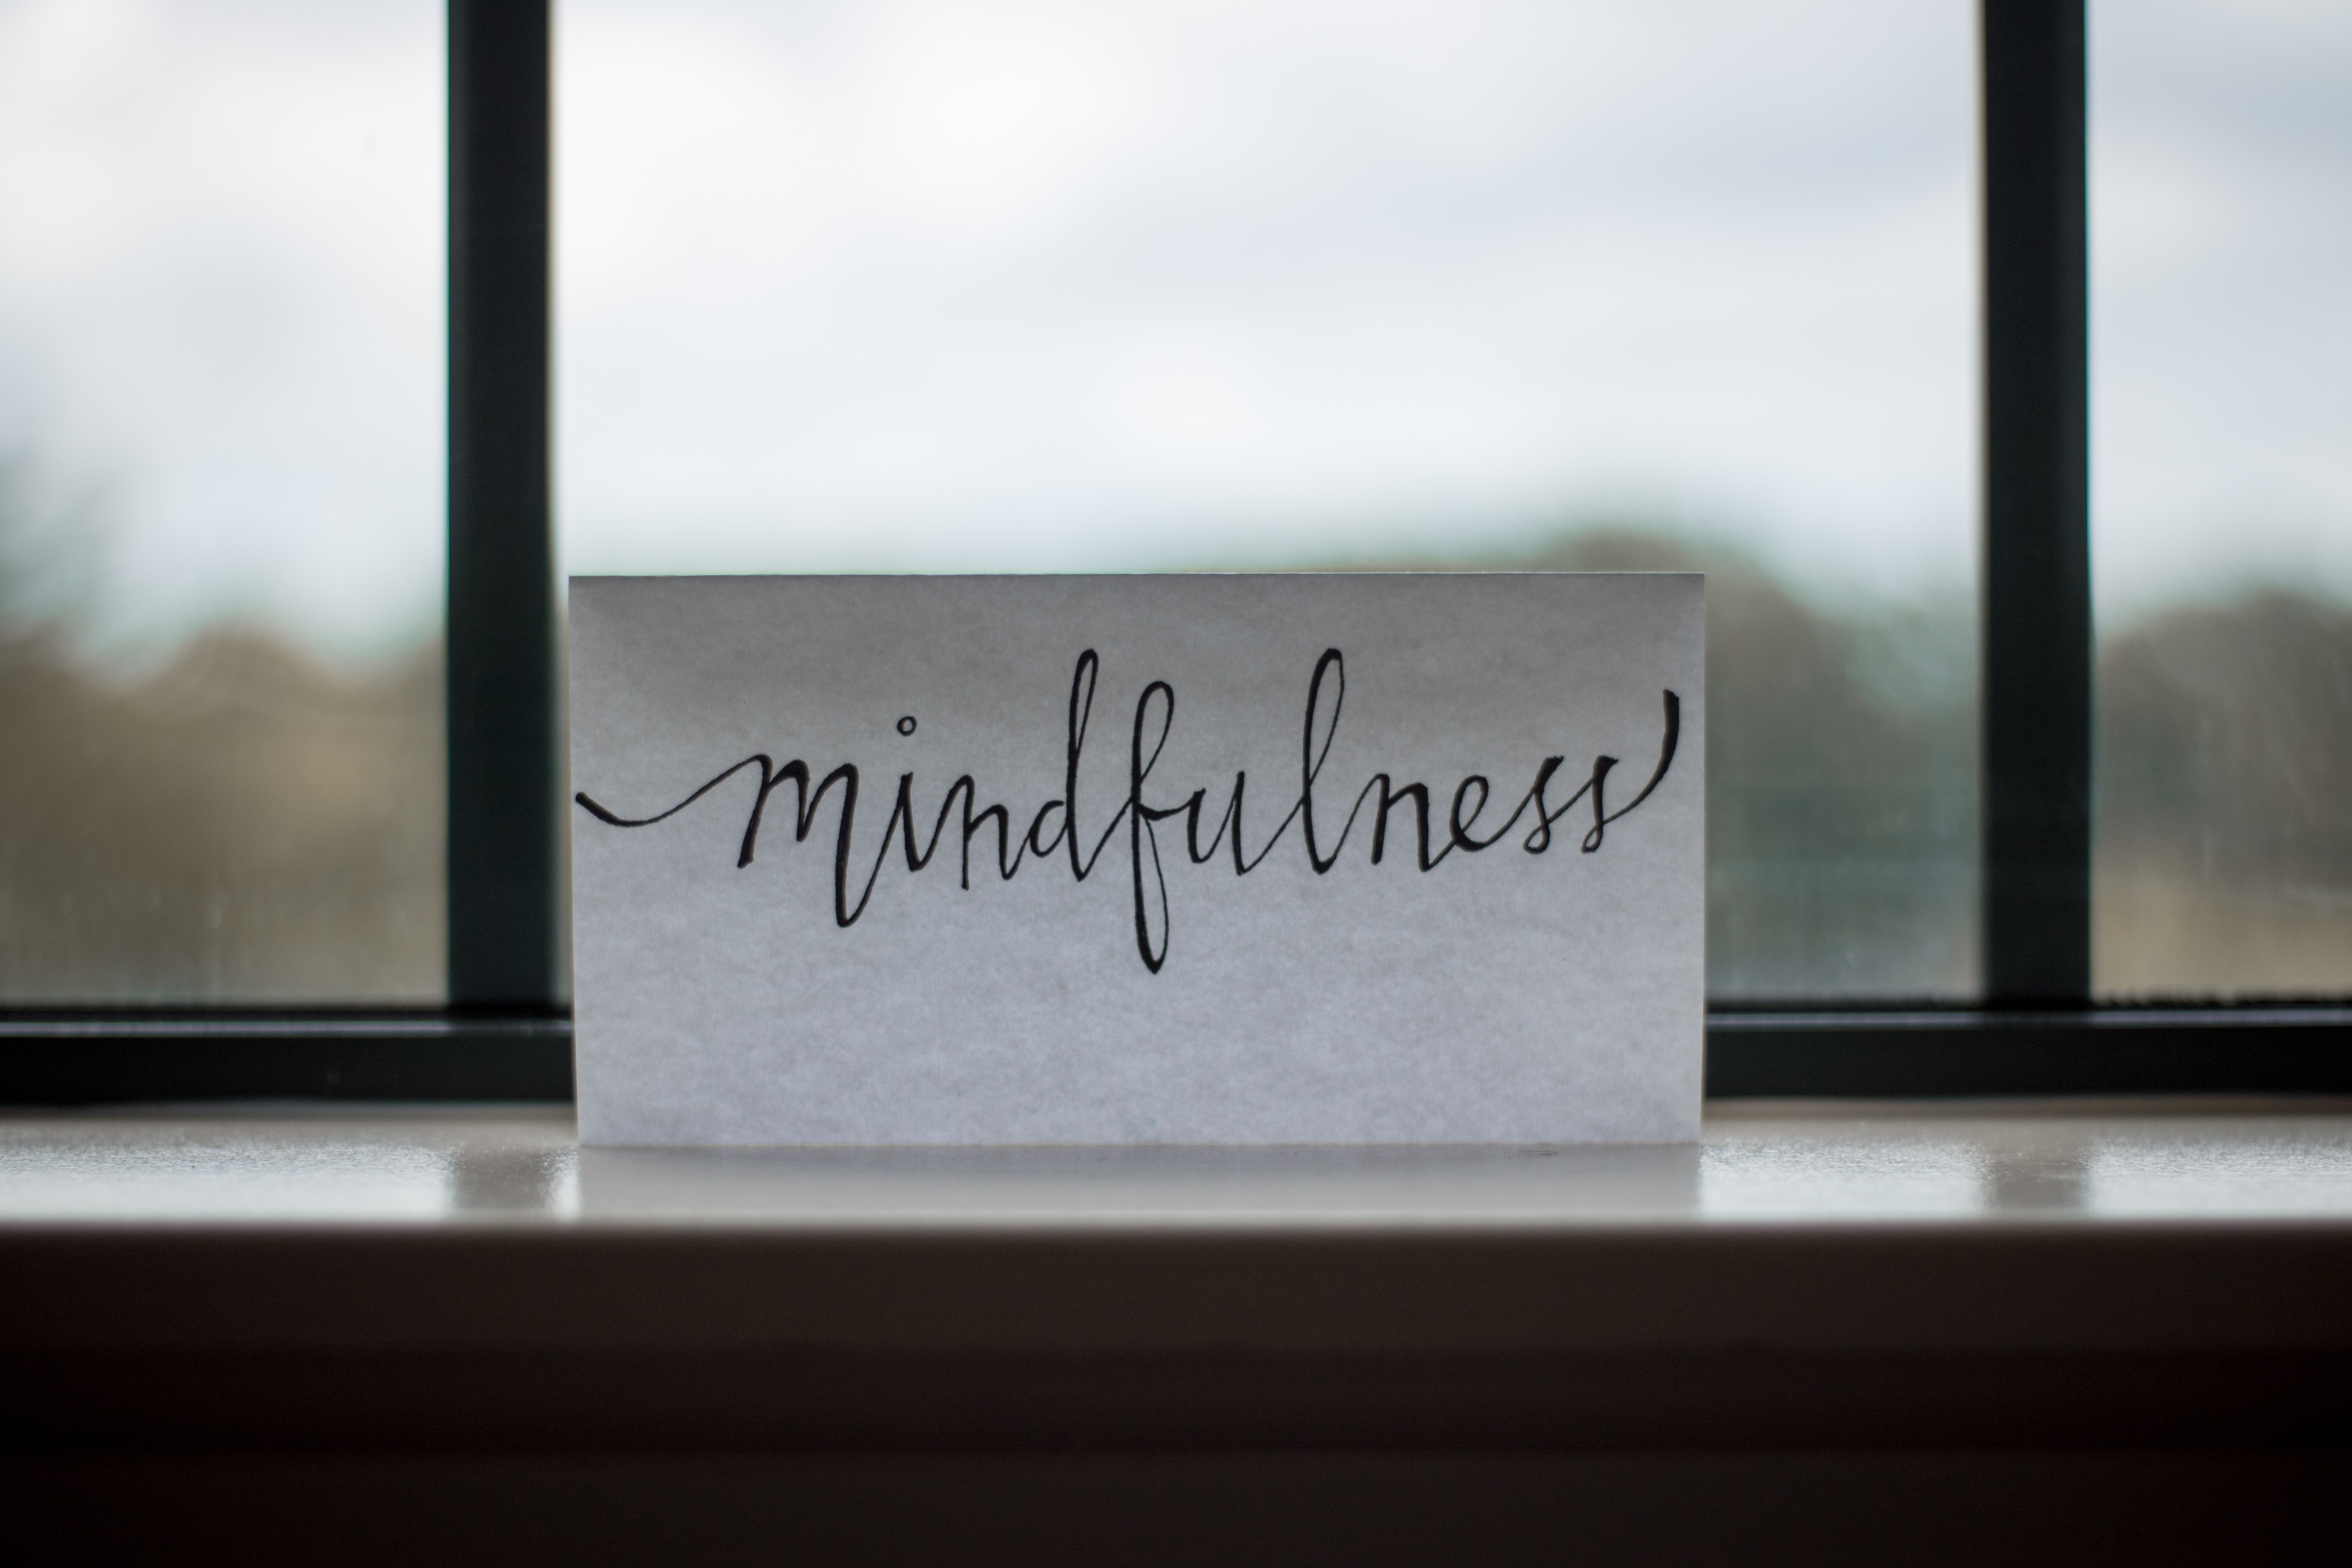 Mindfulness is very needed in this modern world.